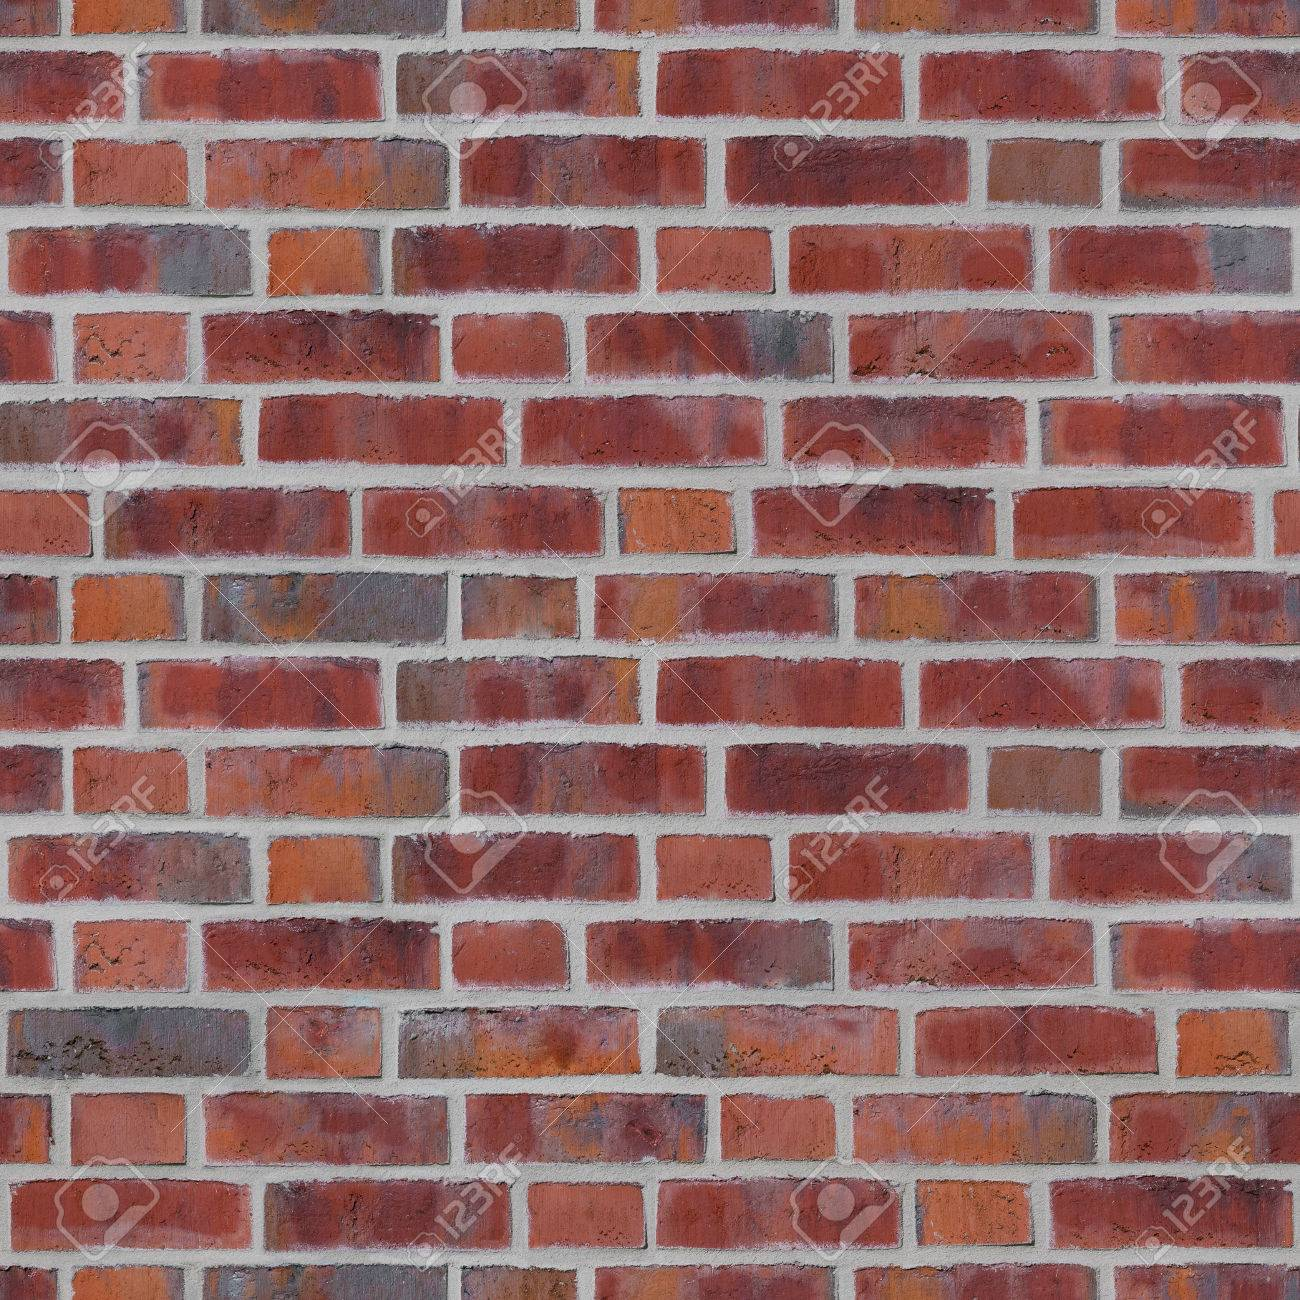 Seamless Red Brick Wall With Brighter Joints For Background Endless Tile Of Stone